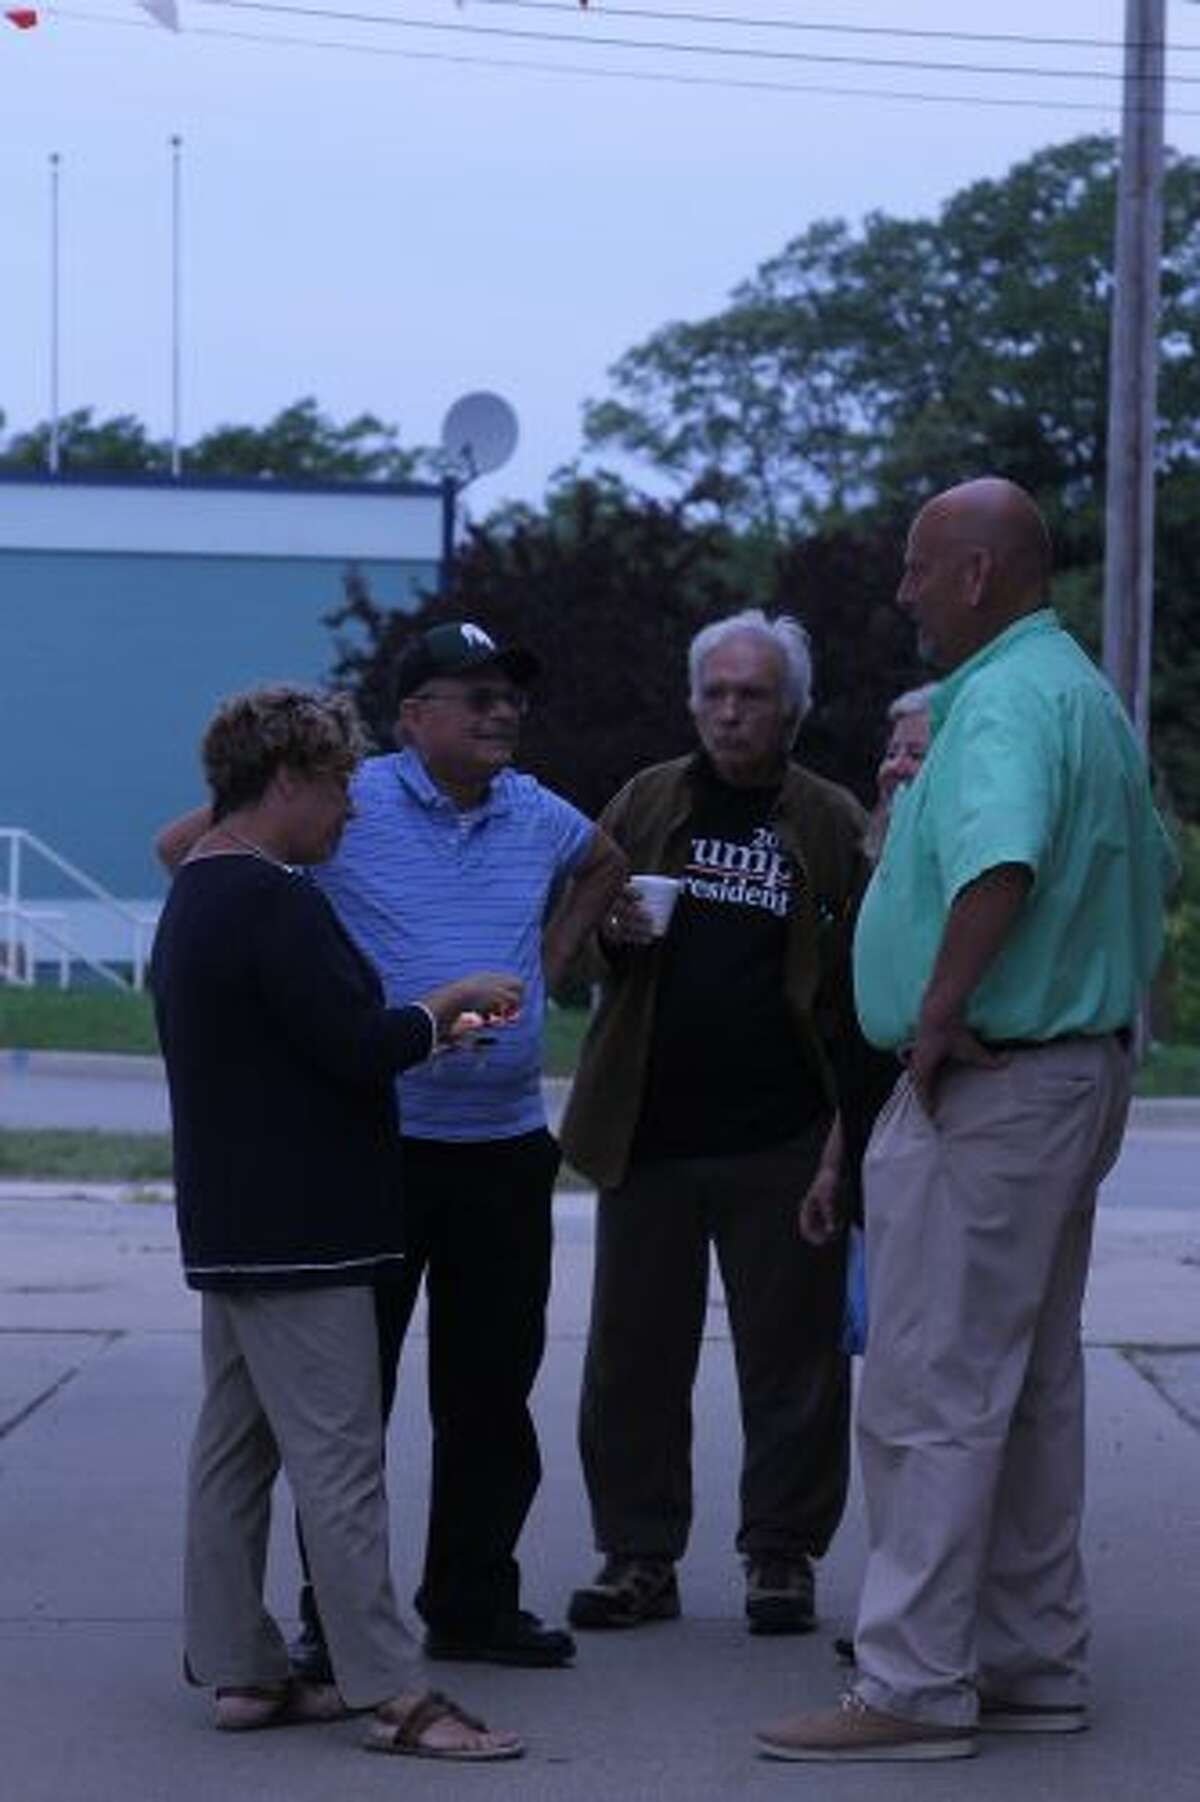 VanderWall and his wife Diane met with constituents throughout the event. (Sean Bradley/News Advocate)